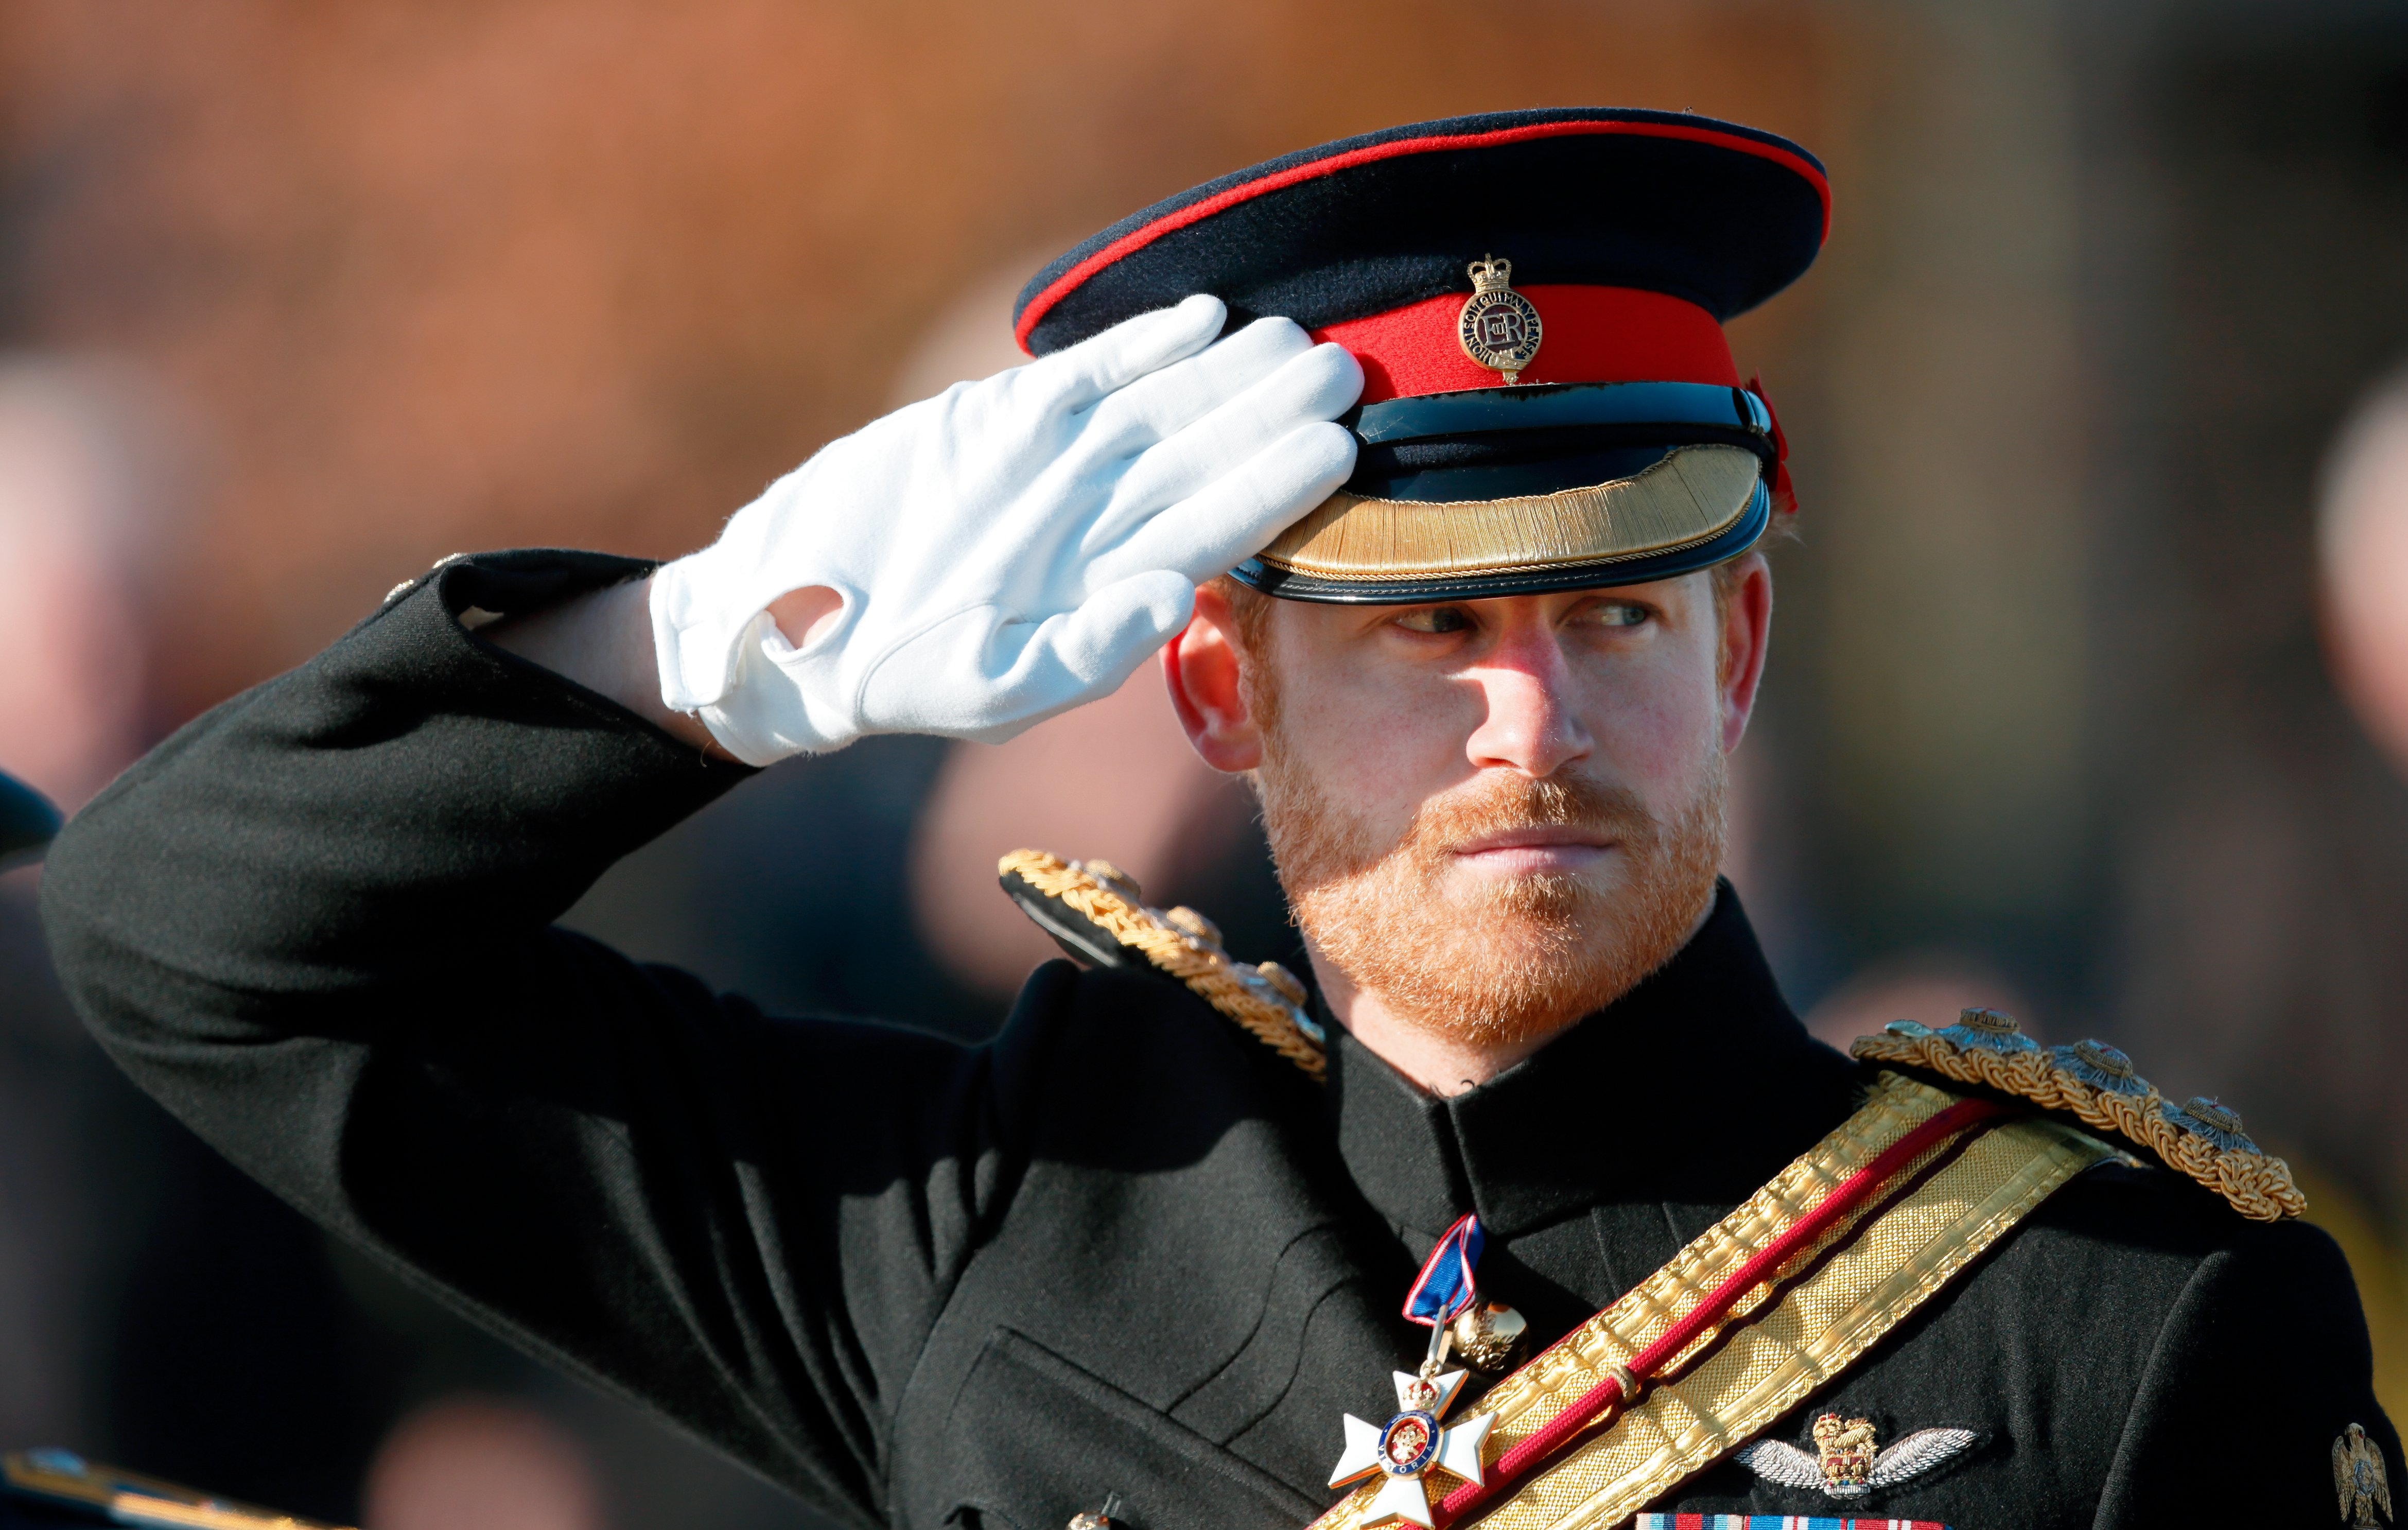 Image Credits: Getty Images / Max Mumby / Indigo   Prince Harry attends the Armistice Day Service at the National Memorial Arboretum on November 11, 2016 in Alrewas, England.